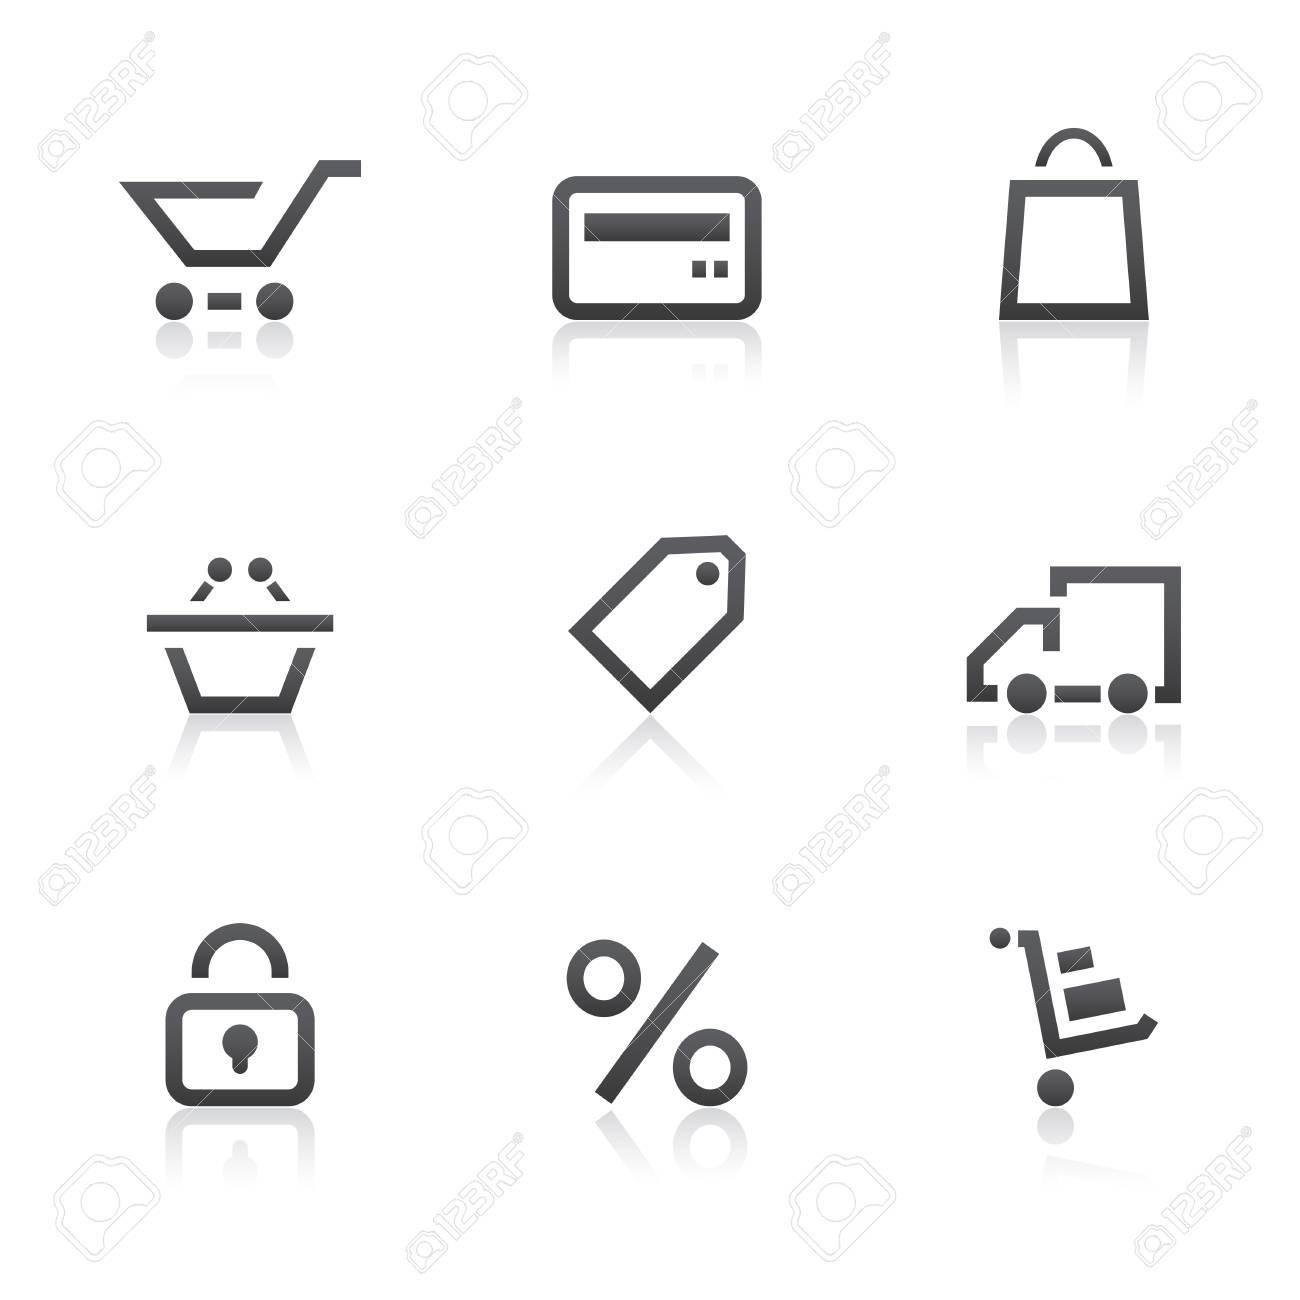 Shopping icons set Stock Vector - 12885170